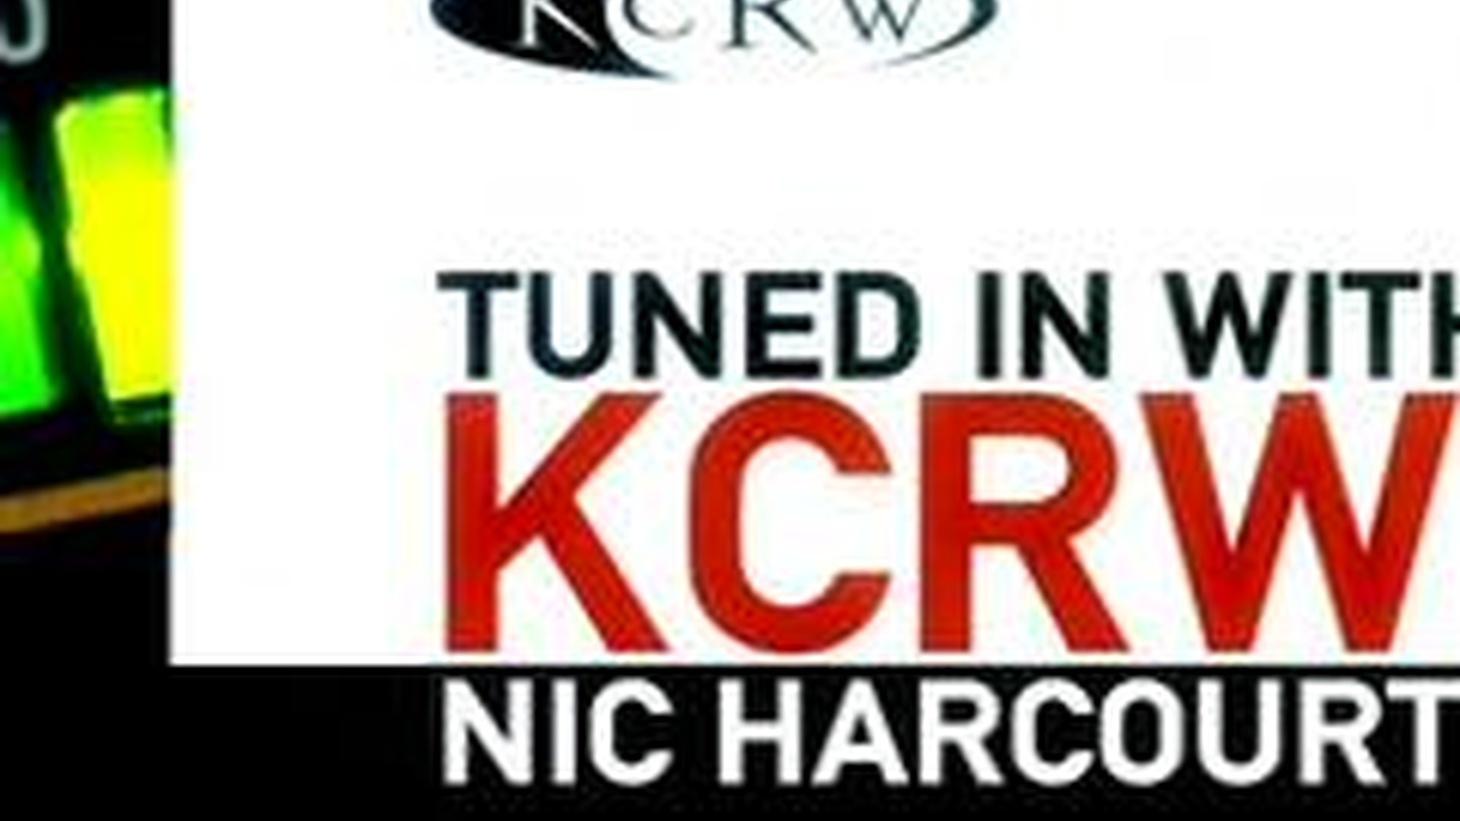 In this episode Nic Harcourt features songs from The Broken West (NOW OR HEAVEN), Jolie Holland (THE LIVING AND THE DEAD), Herman Dune (NEXT YEAR IN ZION), and Calexico (CARRIED TO DUST). Download this video as well as daily free music tracks at http://www.KCRW.com.